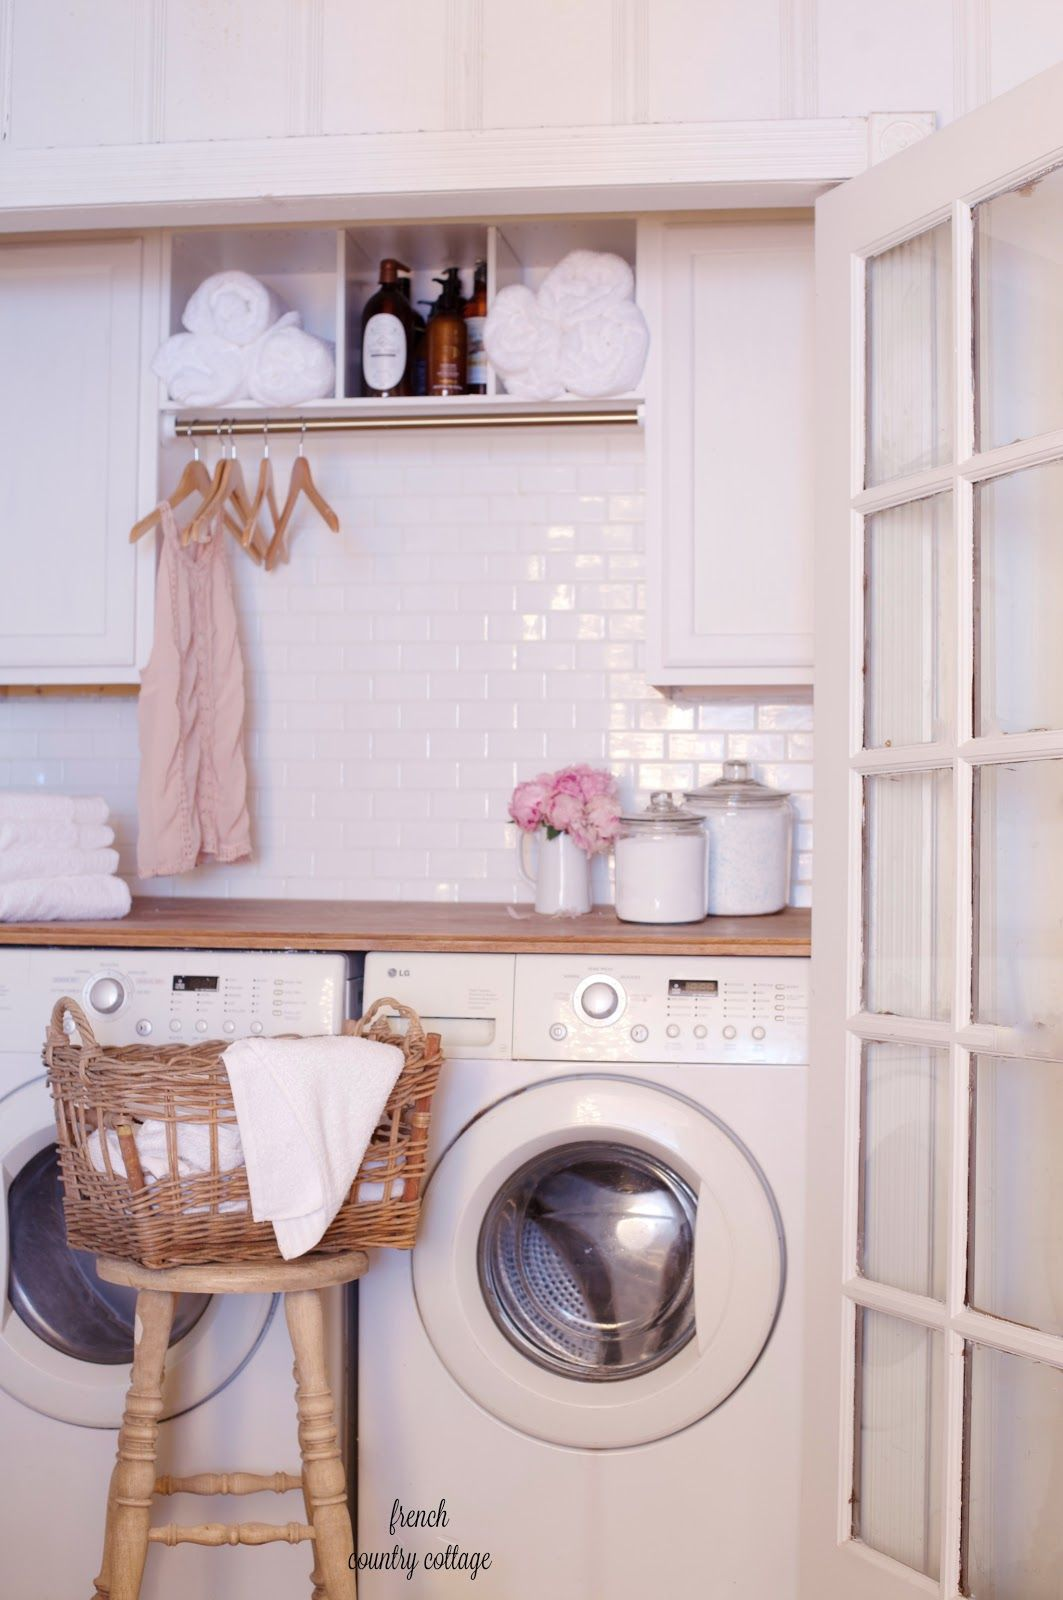 Under 500 Laundry Room Renovation Reveal French Country Cottage Laundry Room Renovation Vintage Laundry Room Vintage Laundry Room Decor